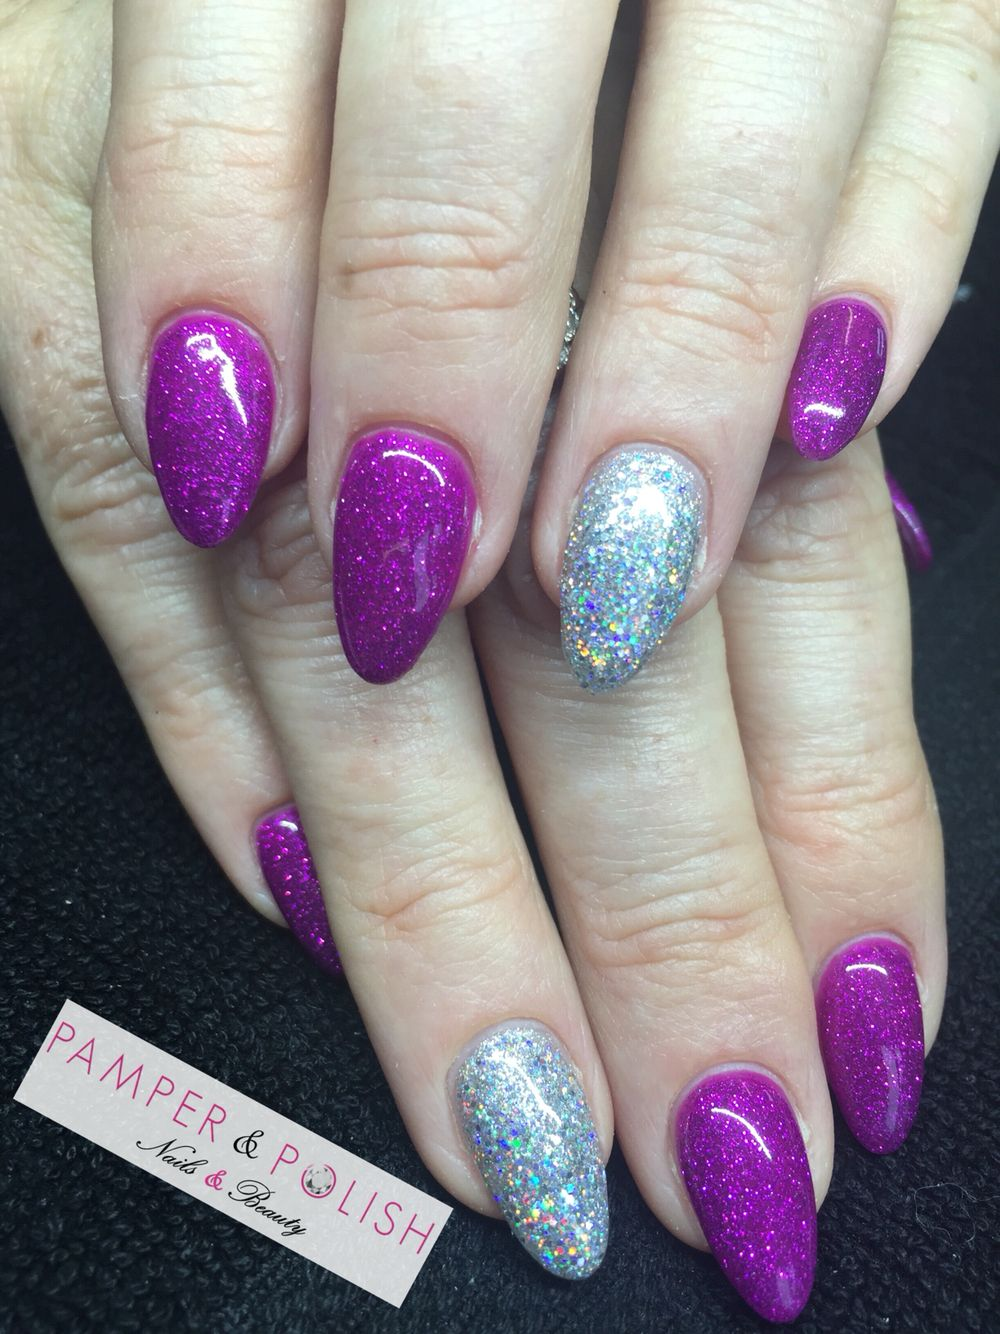 Stunning purple glitter nails using Gellux gel polish and Hologram ...